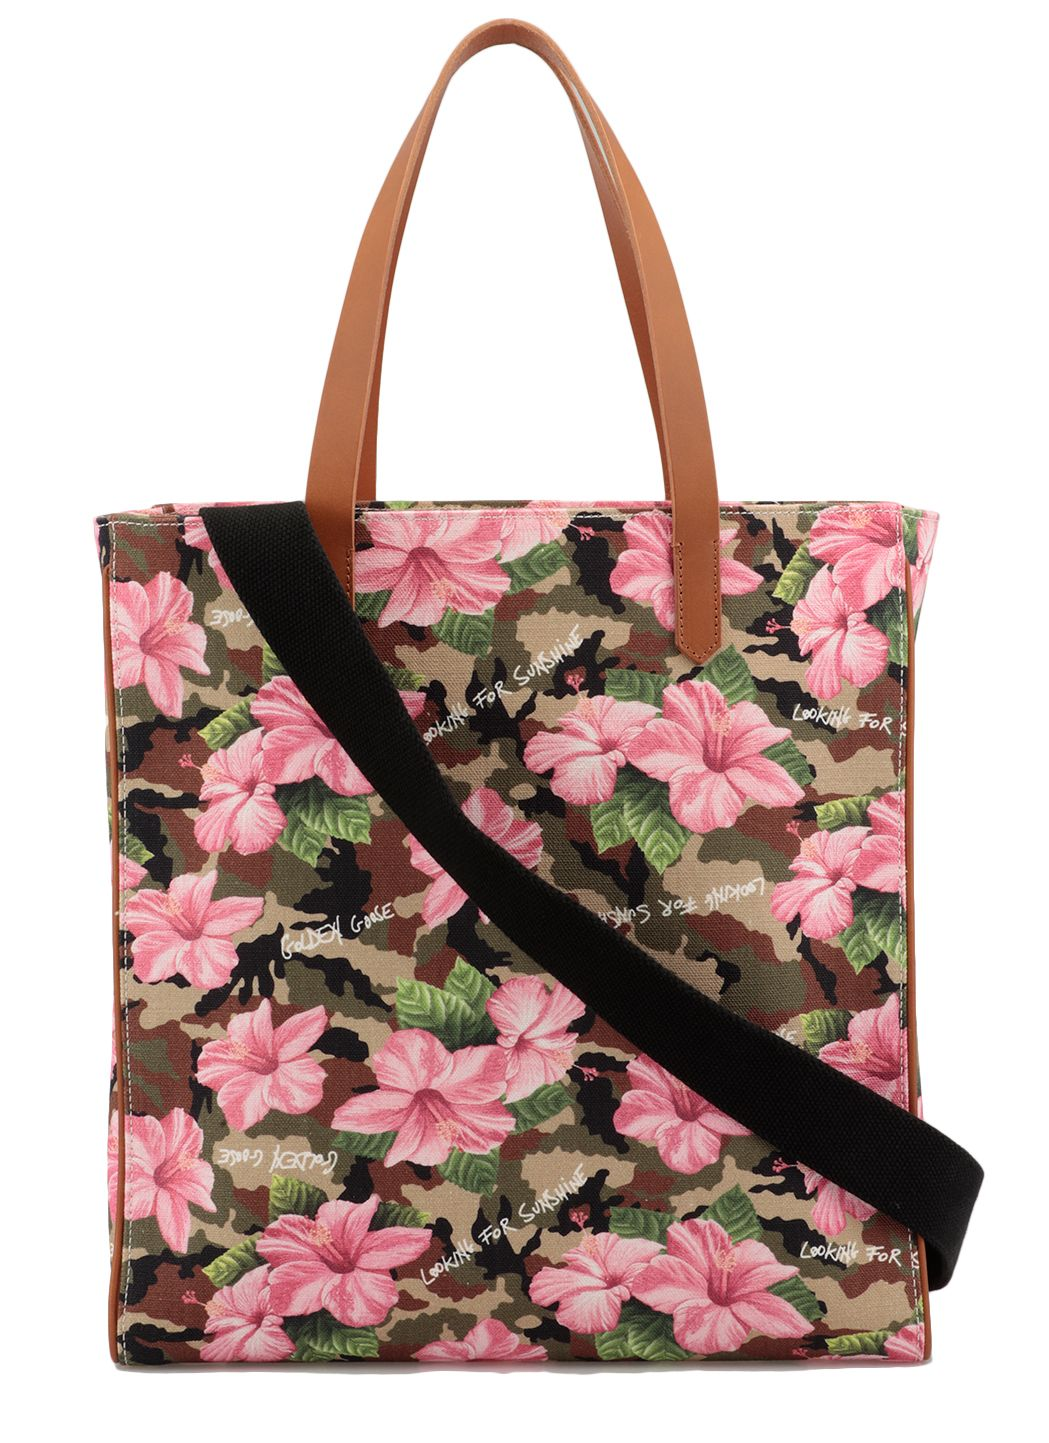 California Shopping Bag